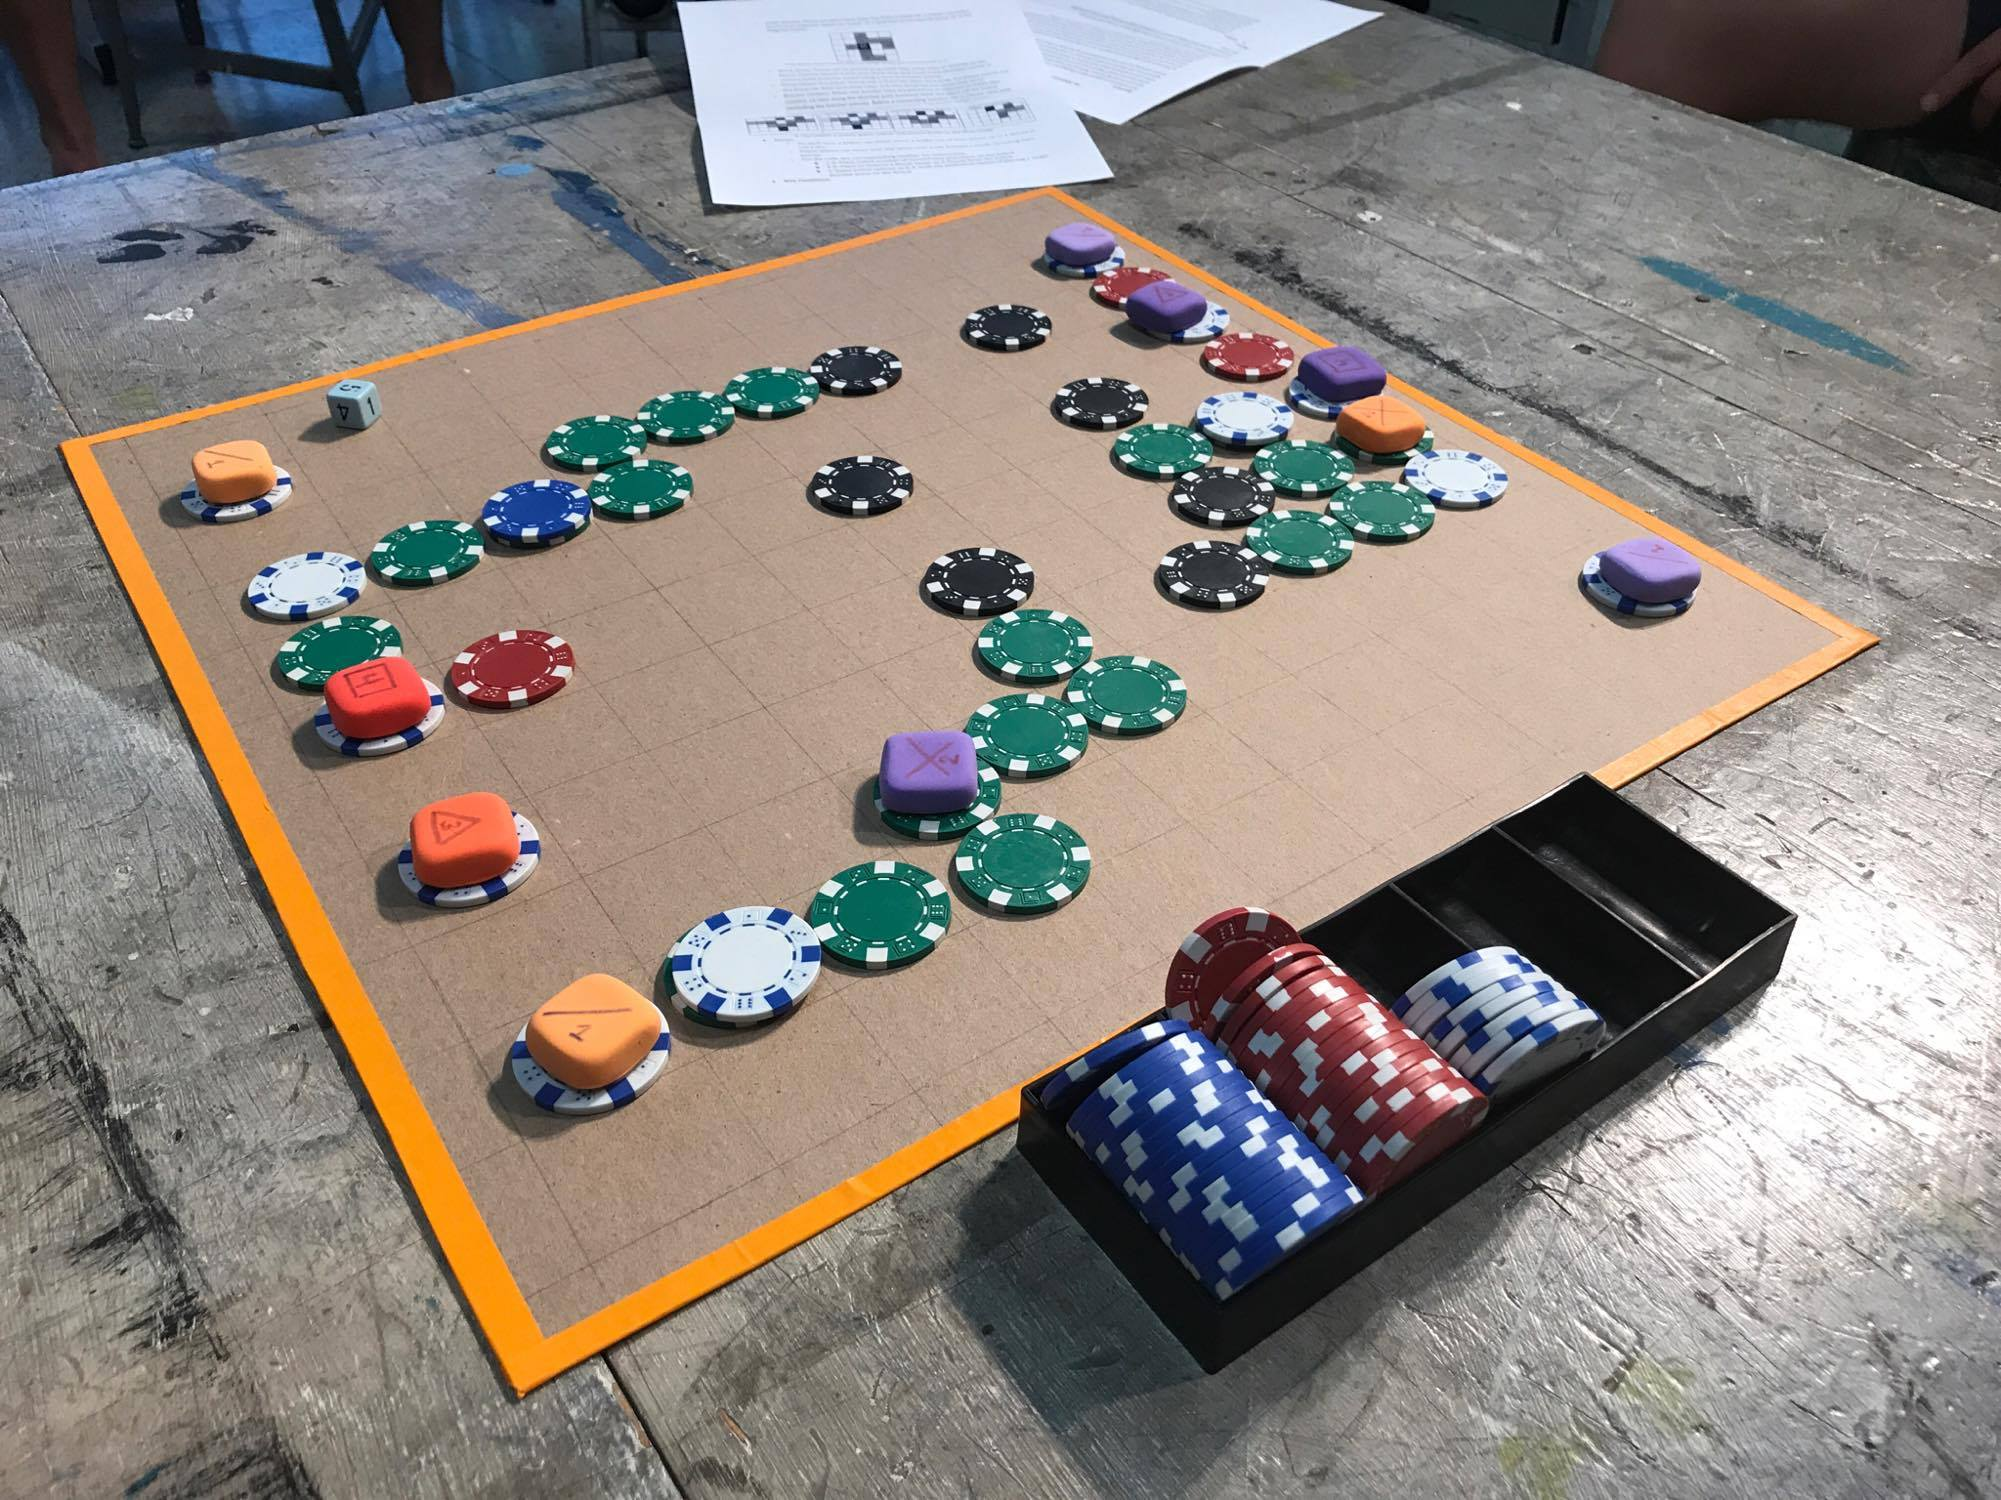 Poker chips and colorful rubber pieces on a brown wood board.